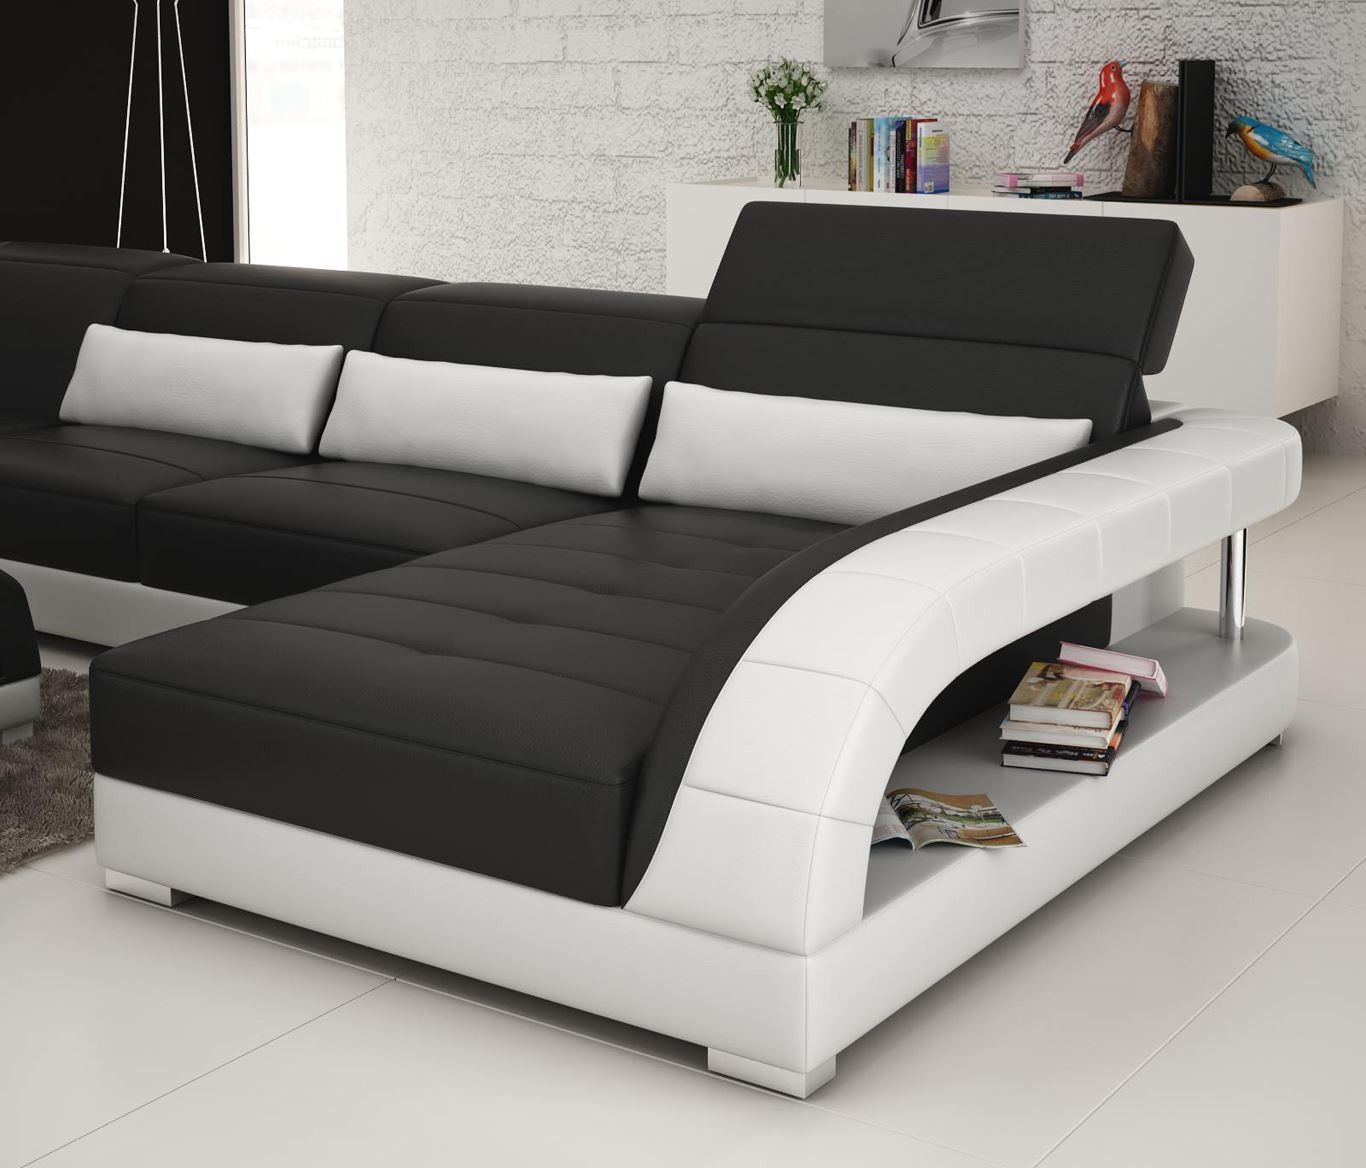 Viper Sectional Sofa From Opulent Items Ihso03125 Interio